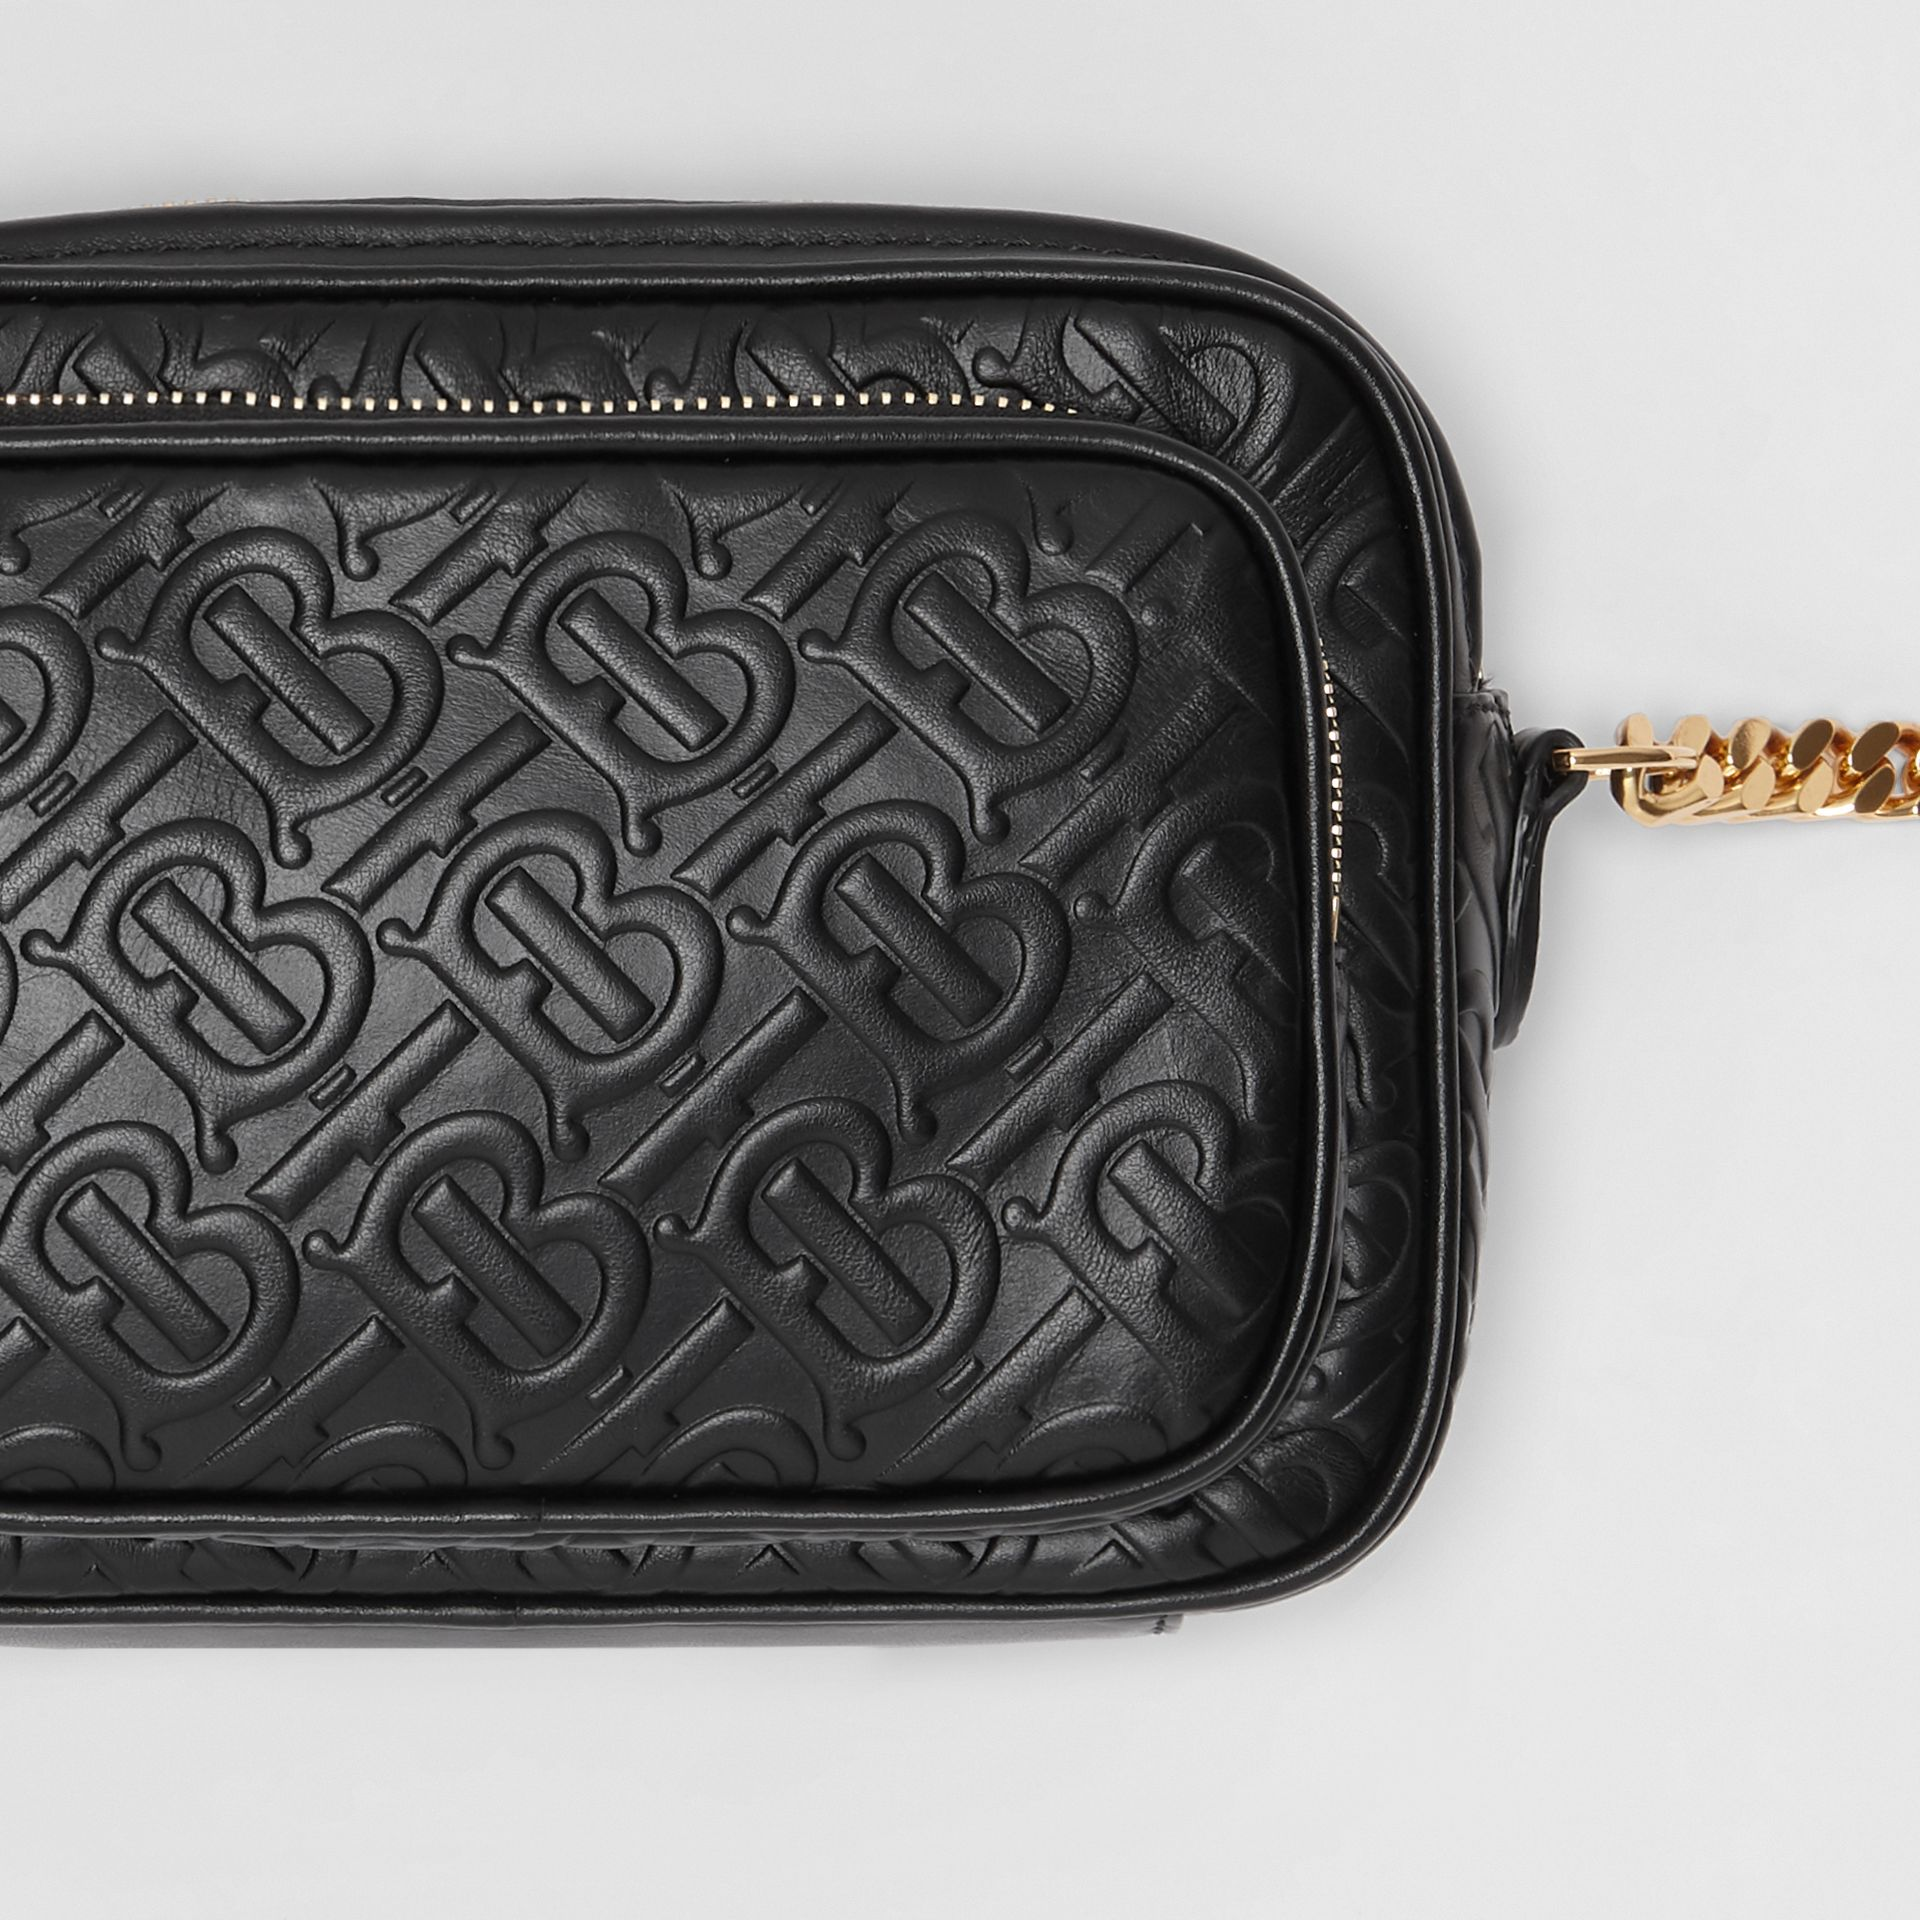 Monogram Leather Camera Bag in Black - Women | Burberry Hong Kong - gallery image 1